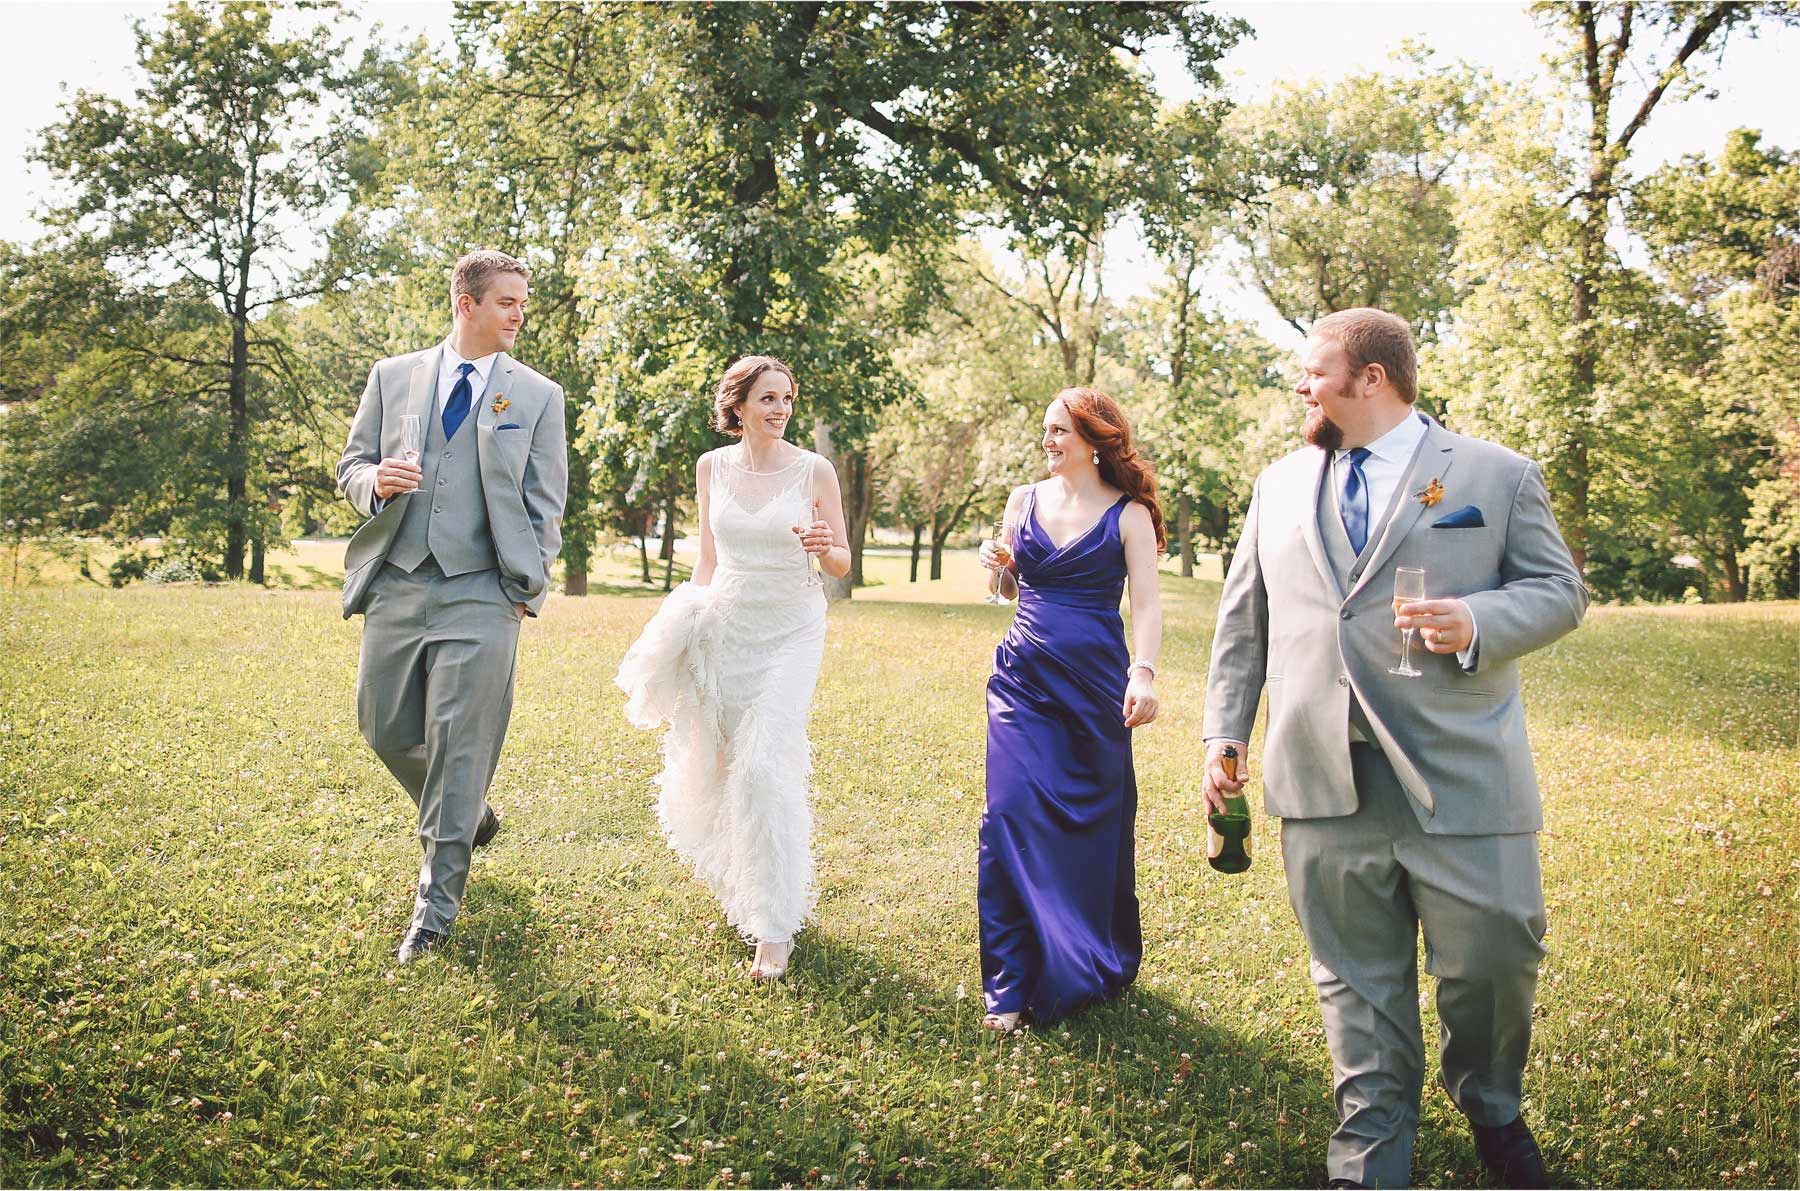 18-Minneapolis-Minnesota-Wedding-Photographer-by-Andrew-Vick-Photography-Summer-Bride-Groom-Bridesmaid-Groomsmen-Bridal-Party-Celebration-Champagne-Stephanie-and-Robert.jpg